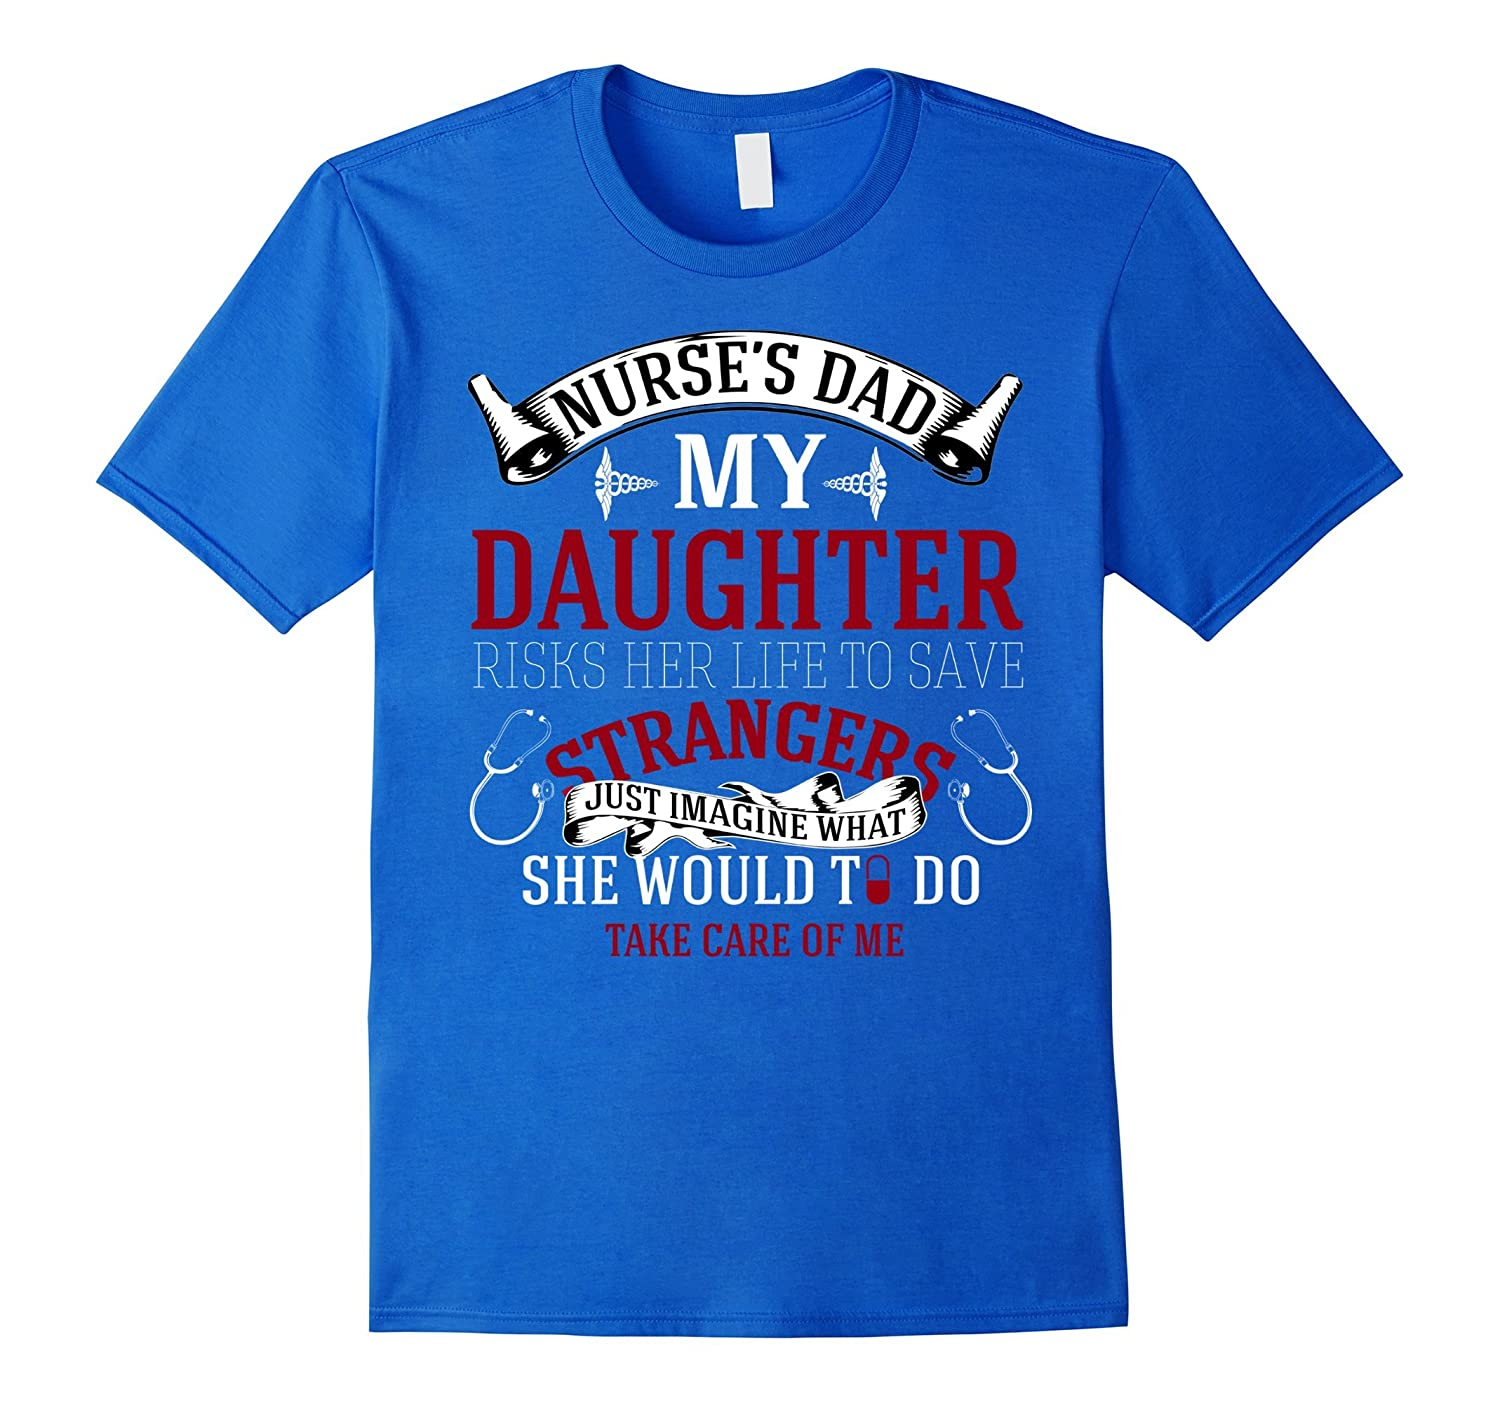 Nurse Dad T-Shirt daughter save stranger less than caring me